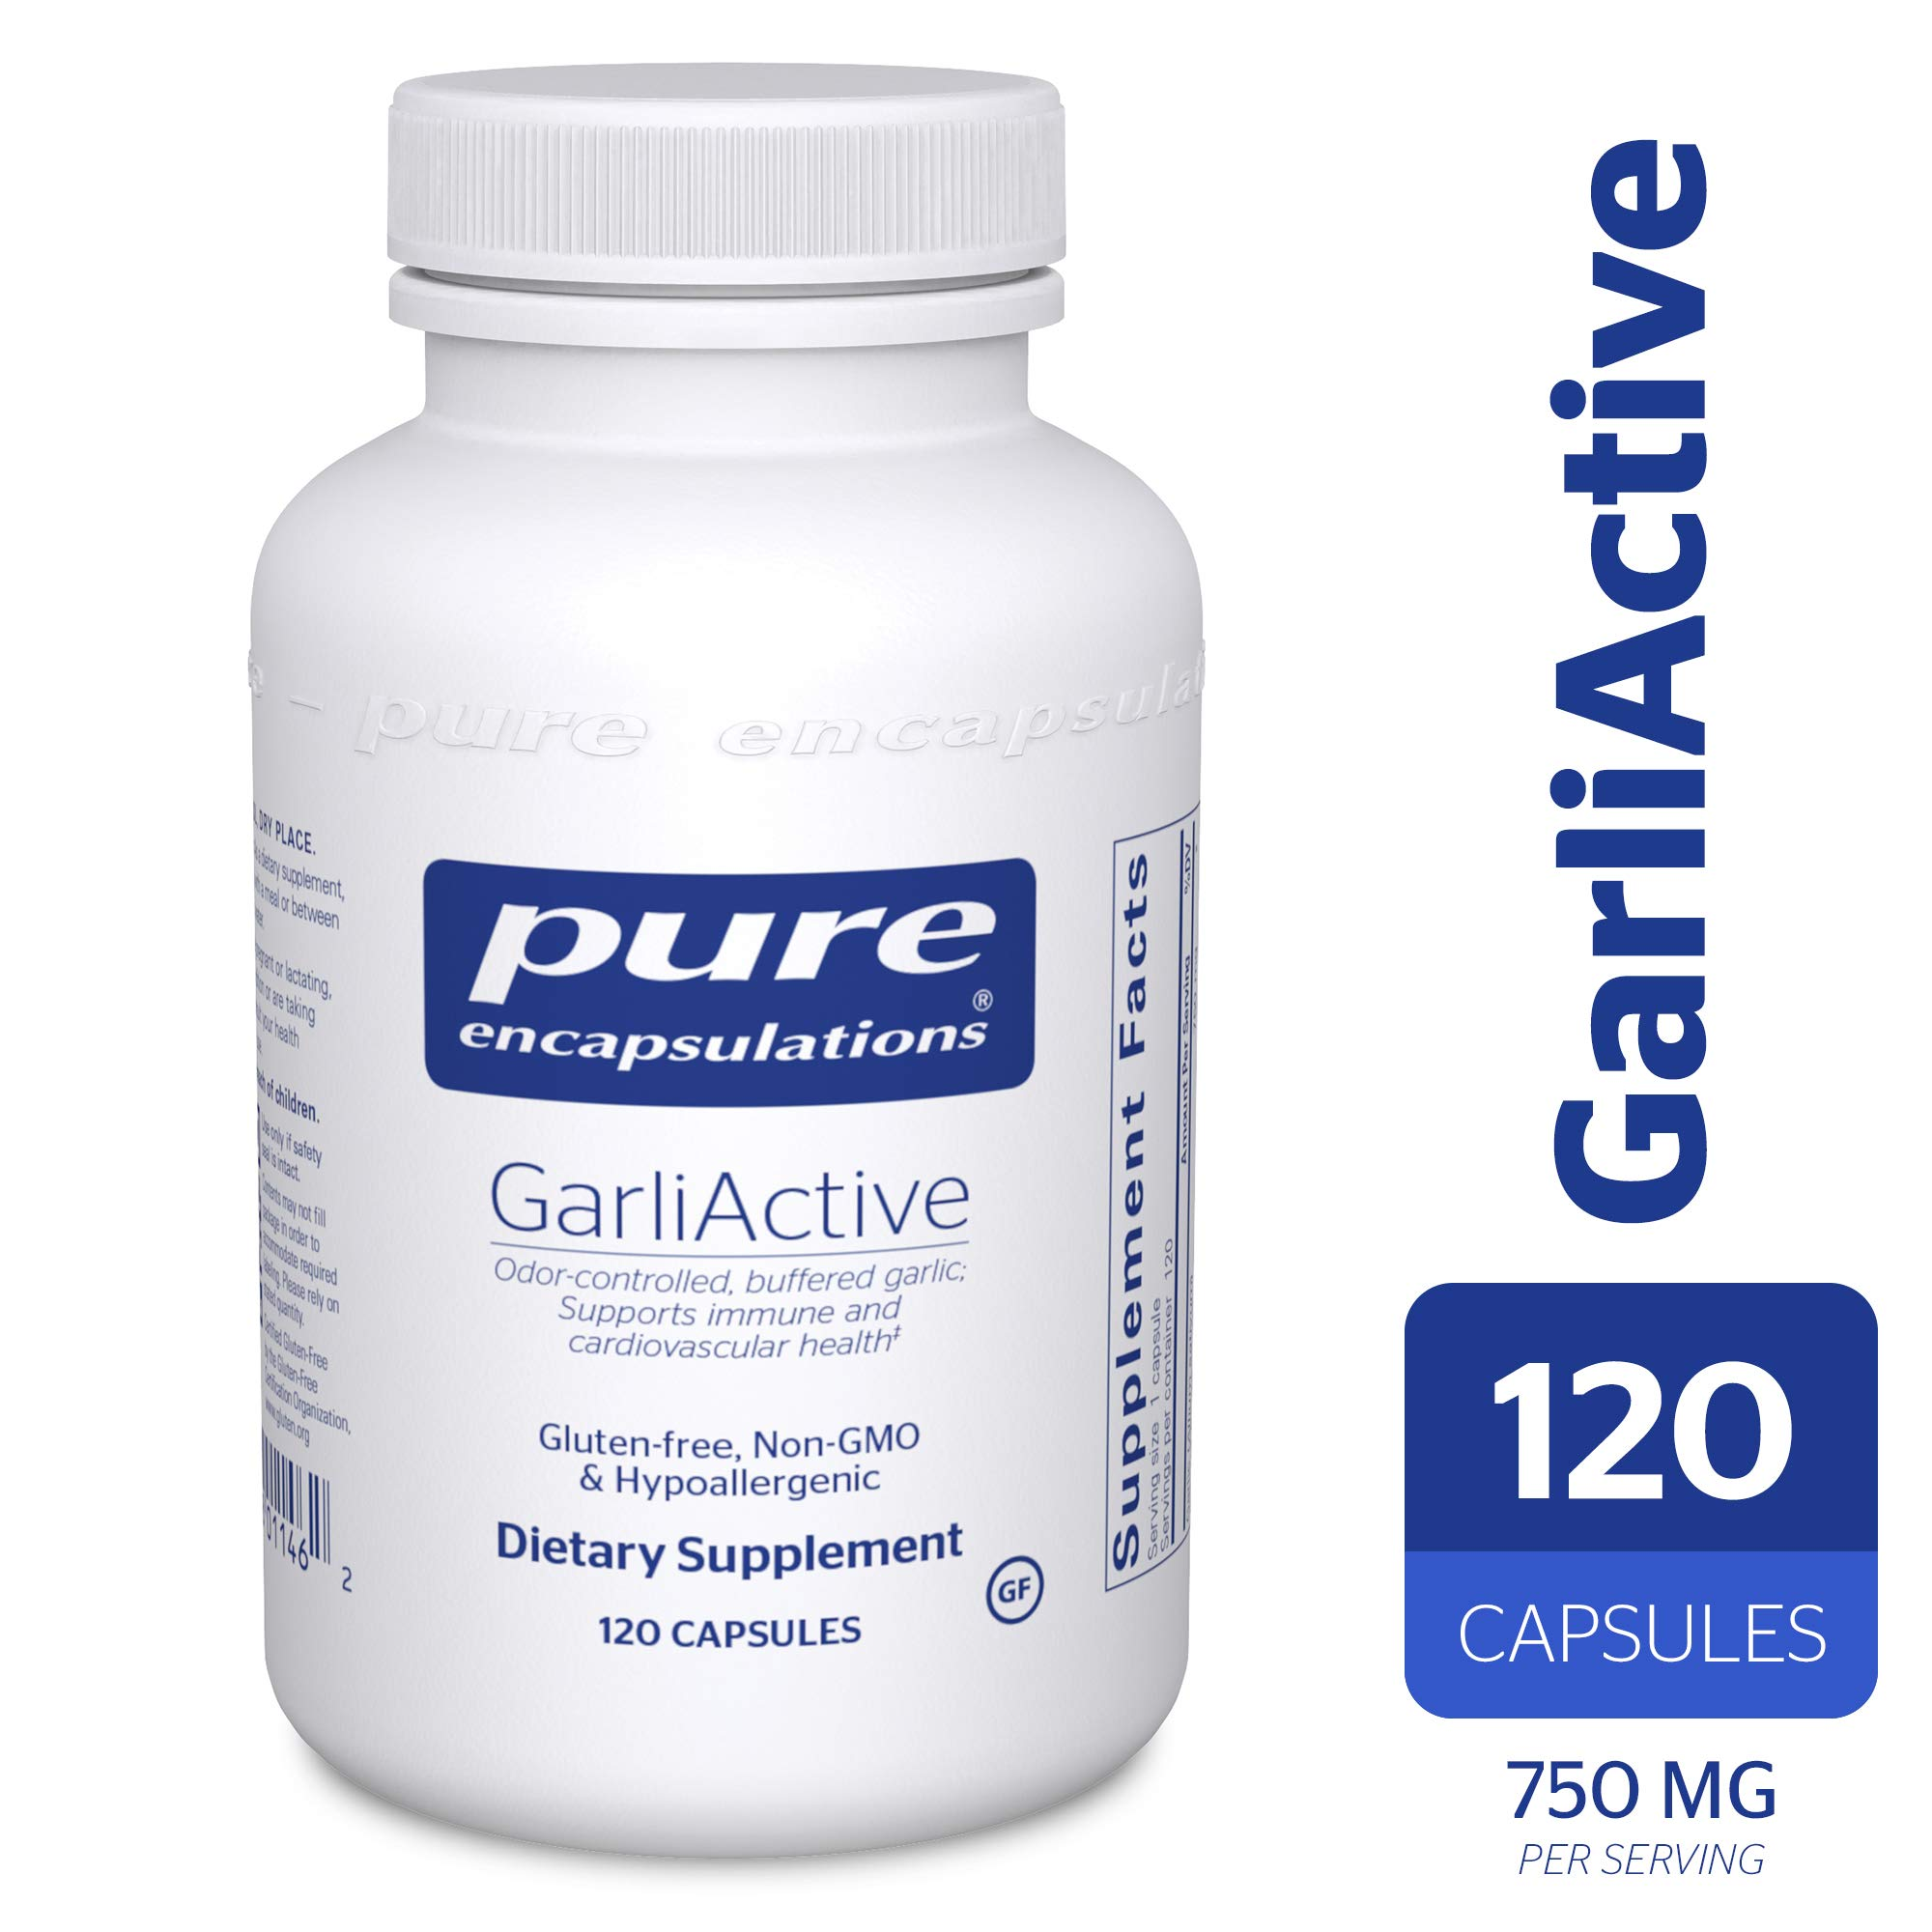 Pure Encapsulations - GarliActive - High-Allicin, Odor-Controlled, Buffered Garlic Supplement - 120 Capsules